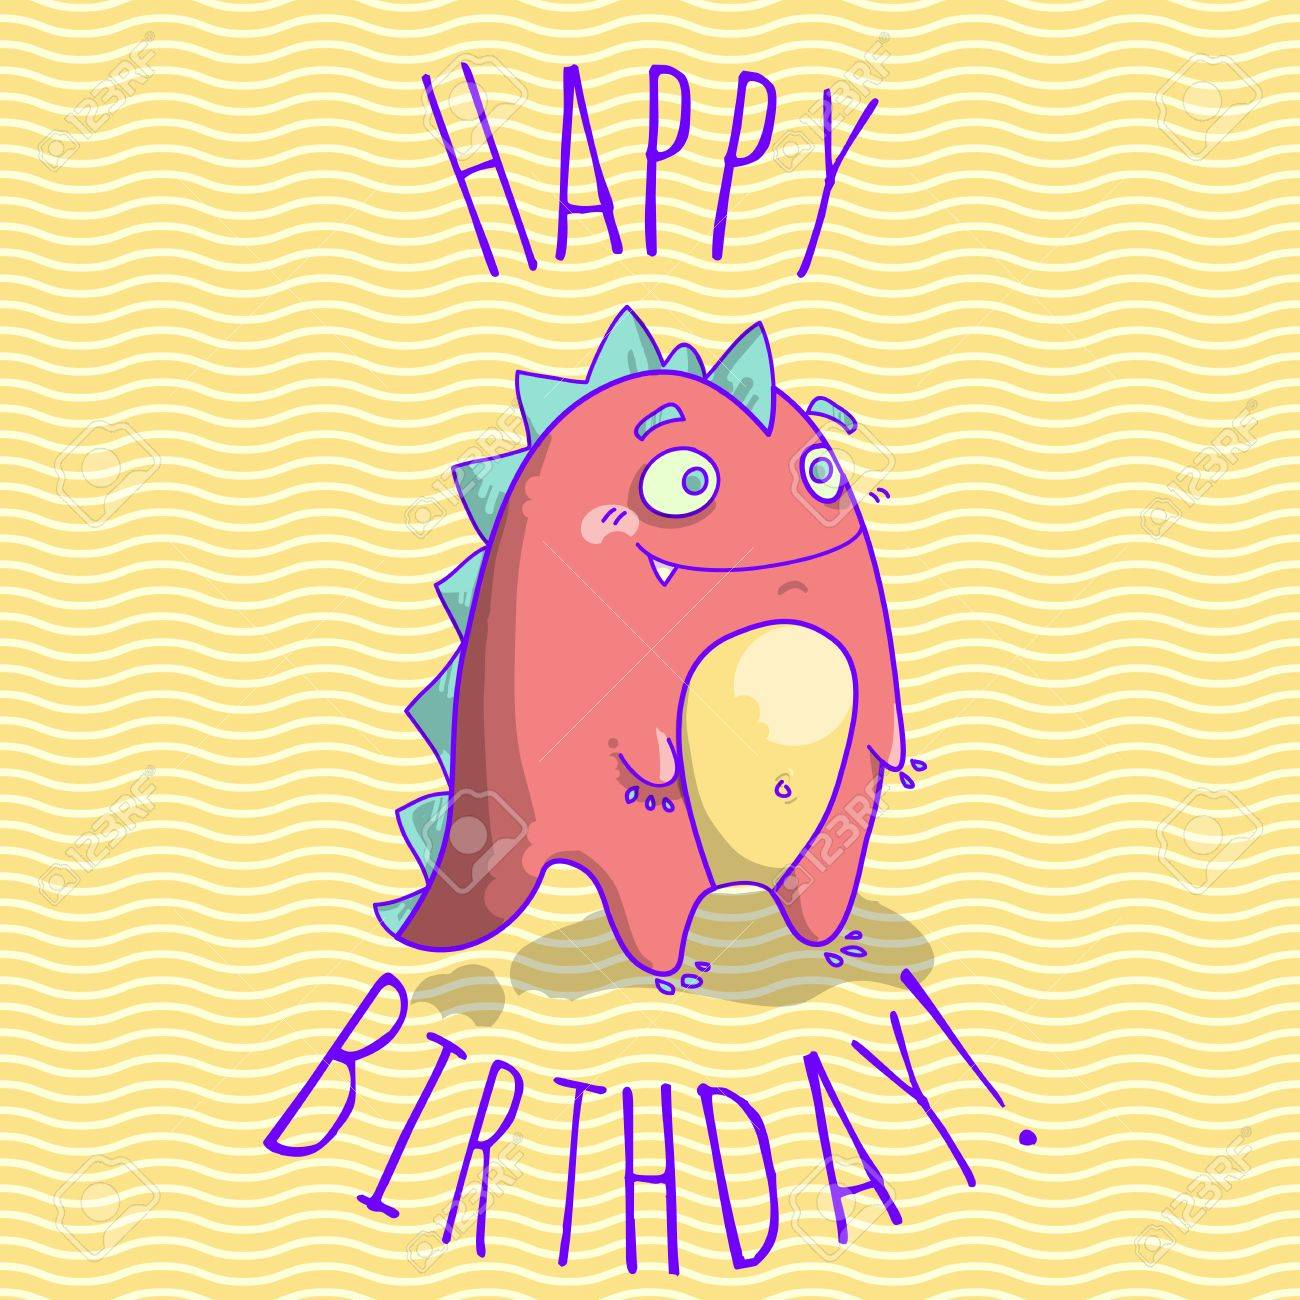 Happy Birthday Card Template For Children With Funny Dinosaur Character.  Vector Illustration. Stock Vector